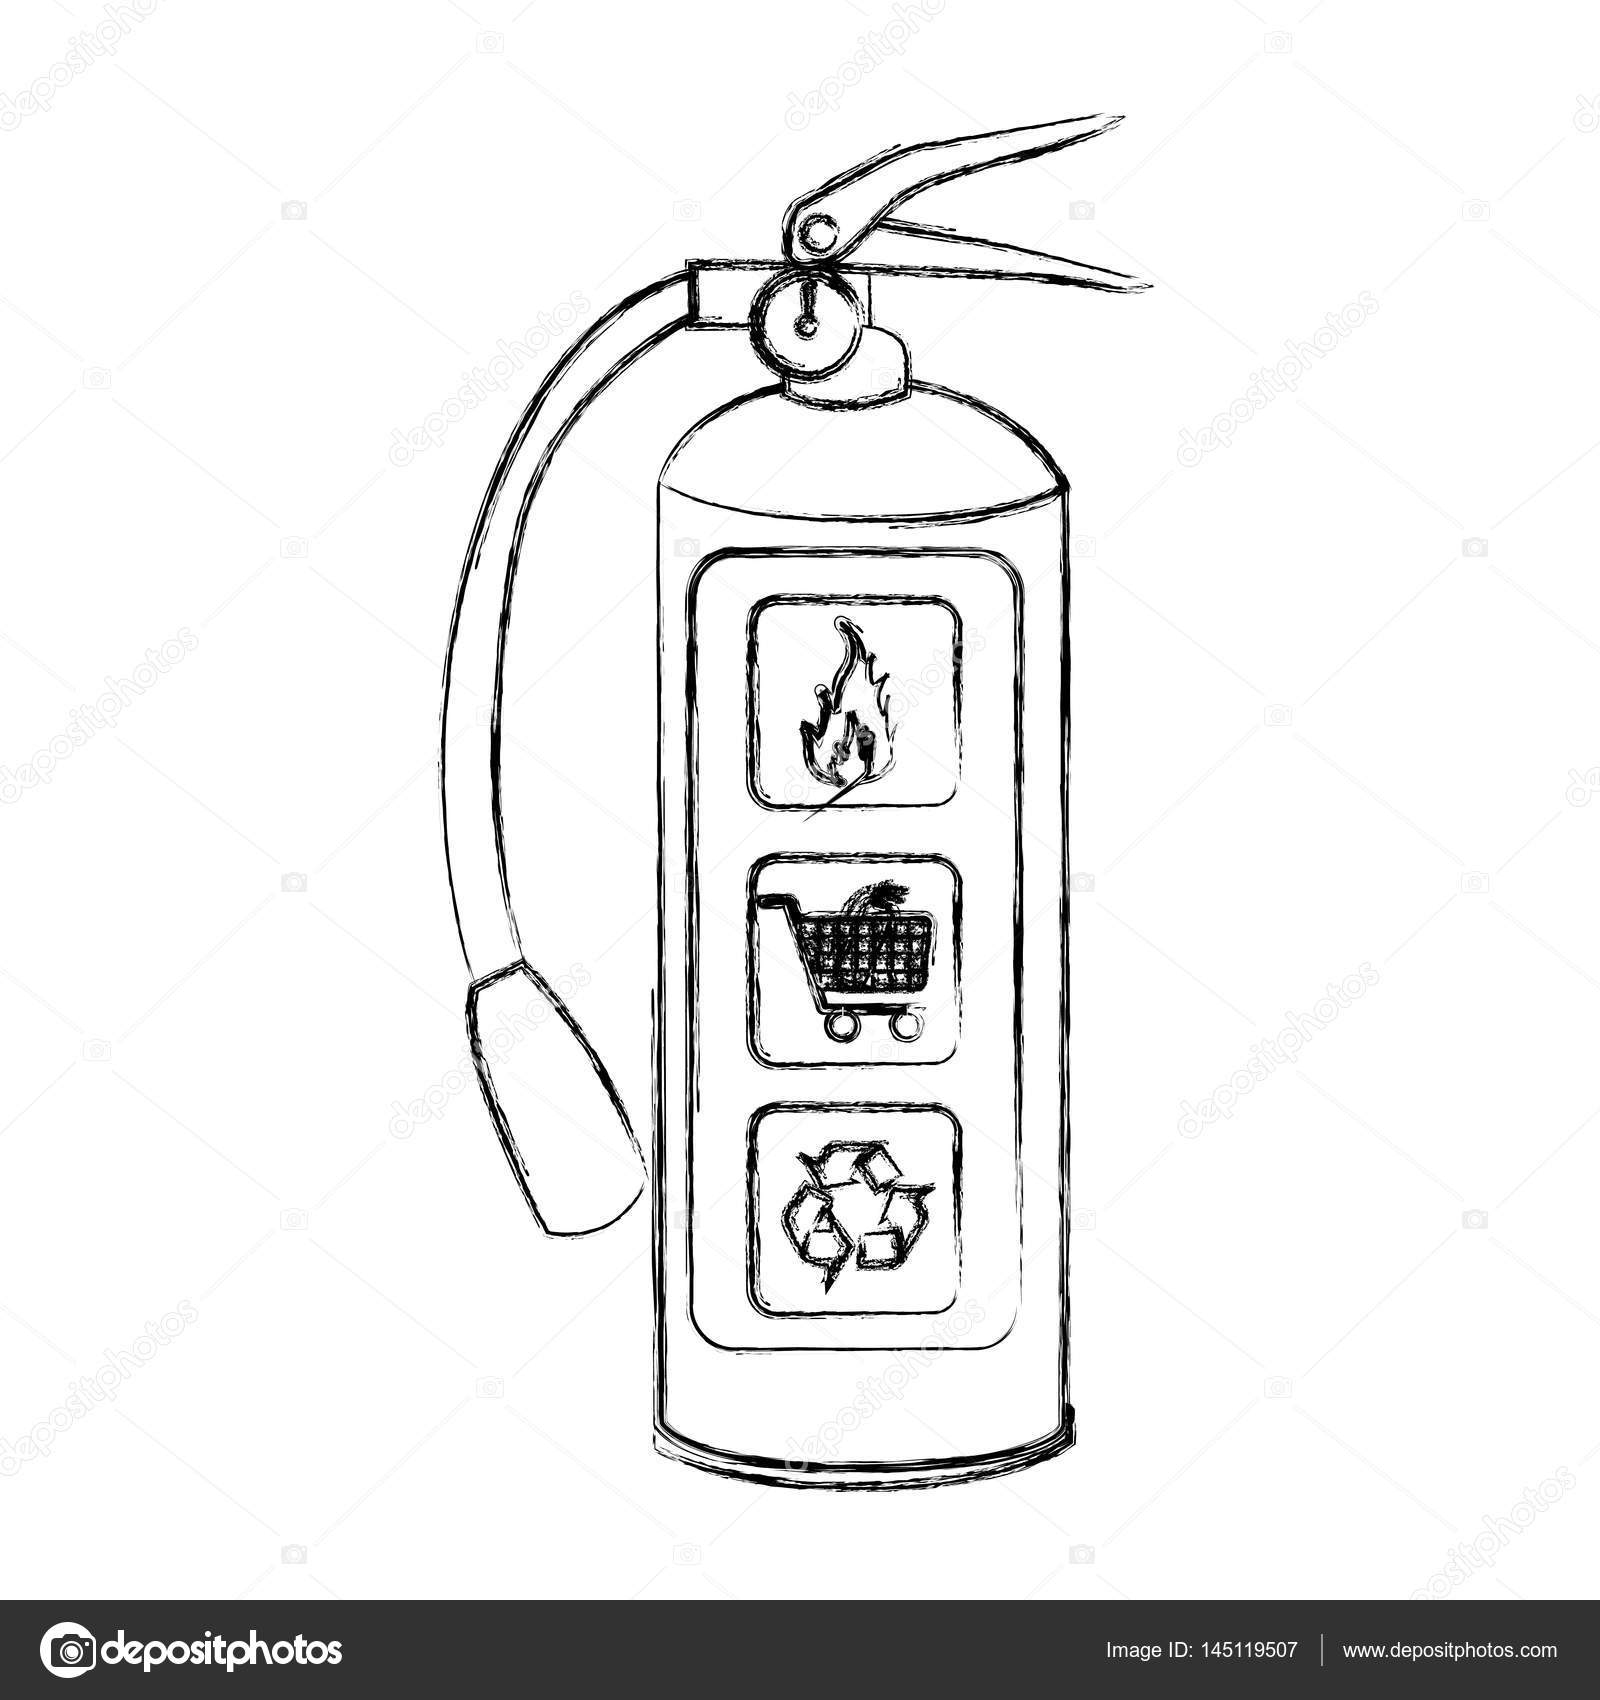 Blurred Sketch Silhouette Fire Extinguisher Icon Stock